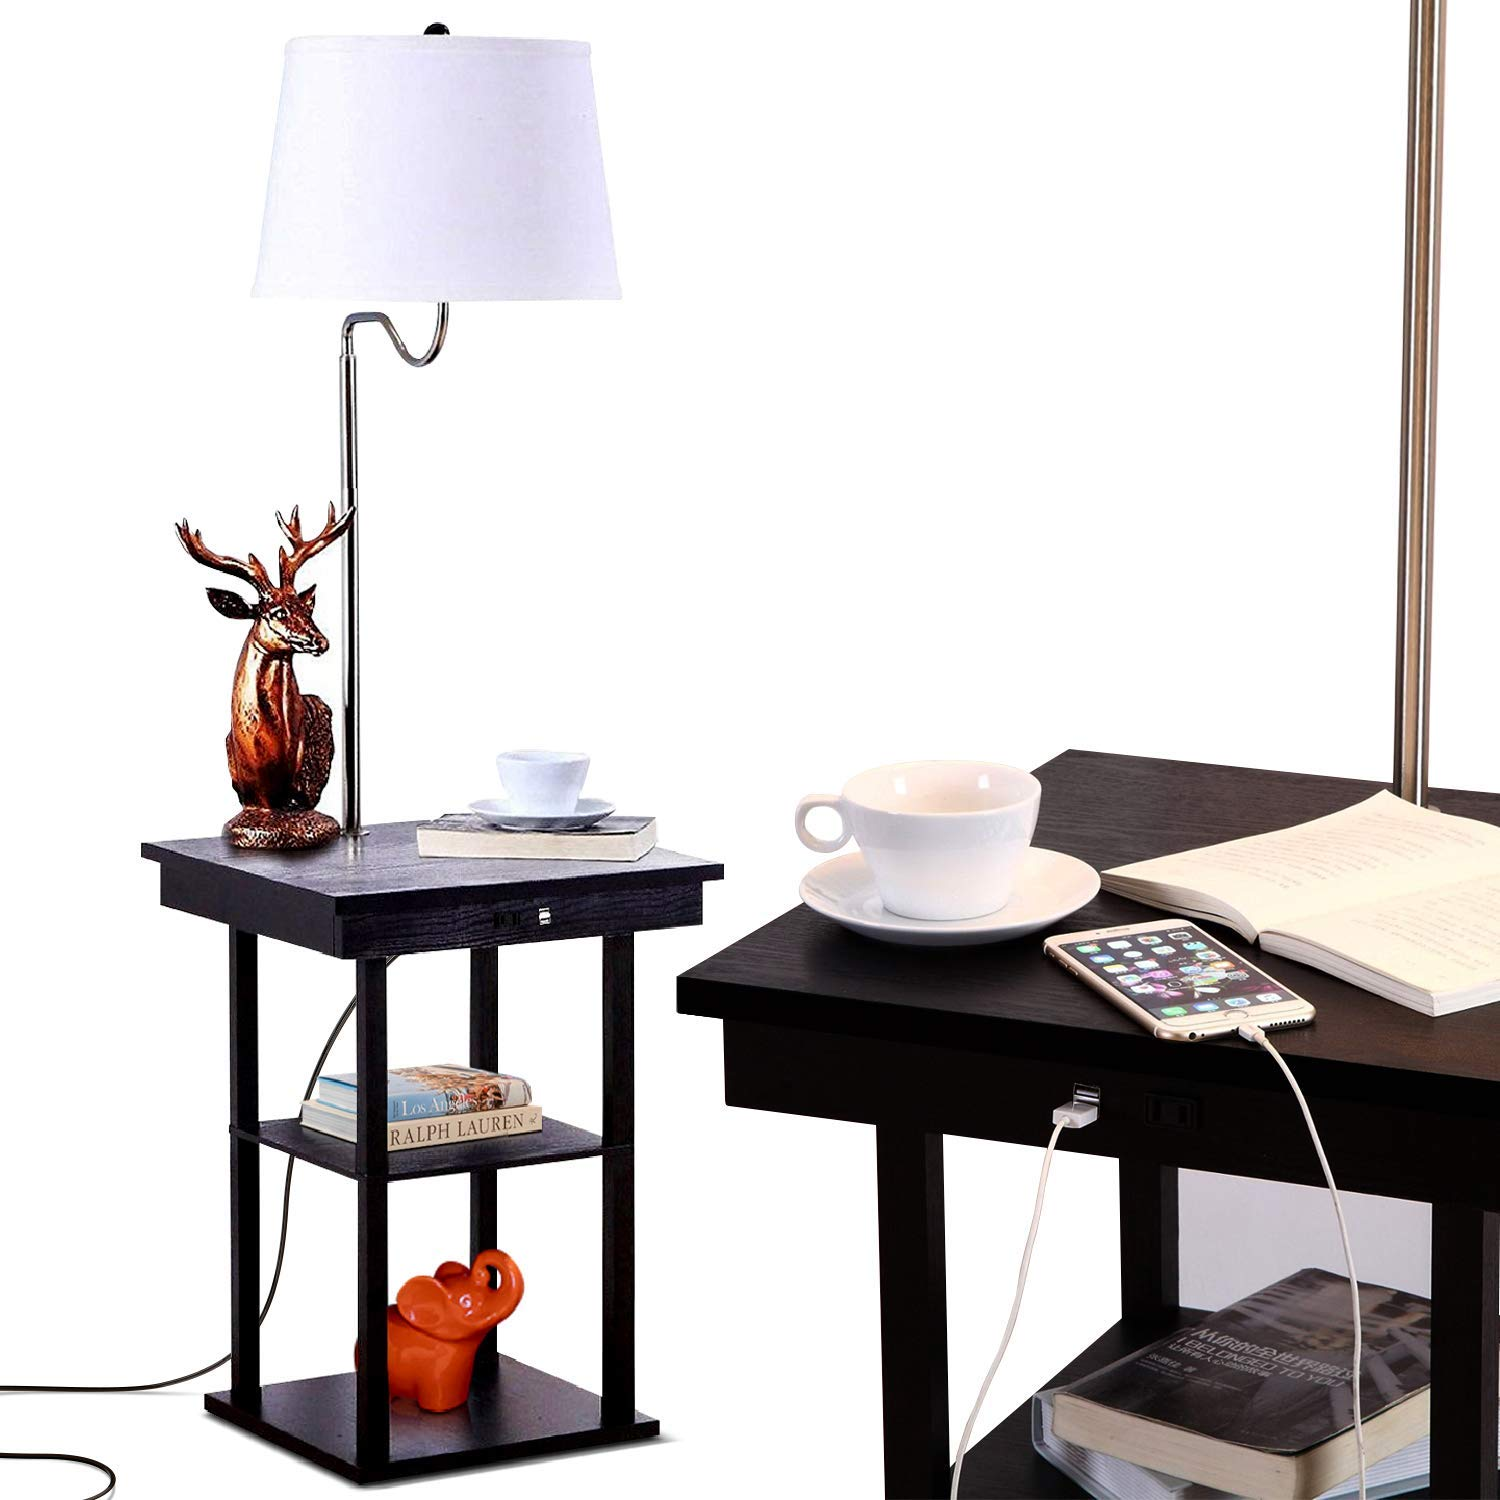 Cool coffee tables Brightech - Mid Century Modern